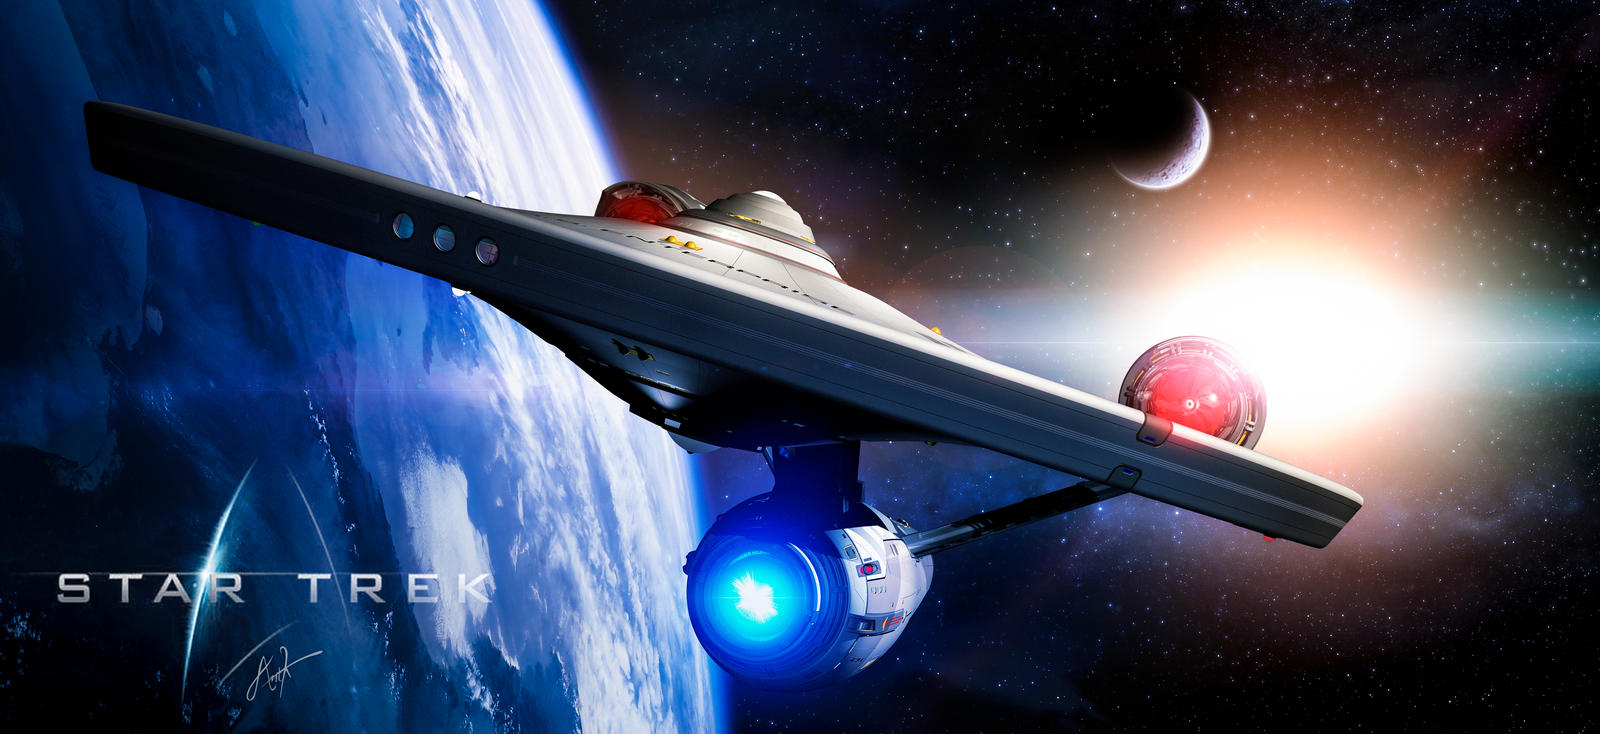 star trek - Constitution Class  Starship by rOEN911